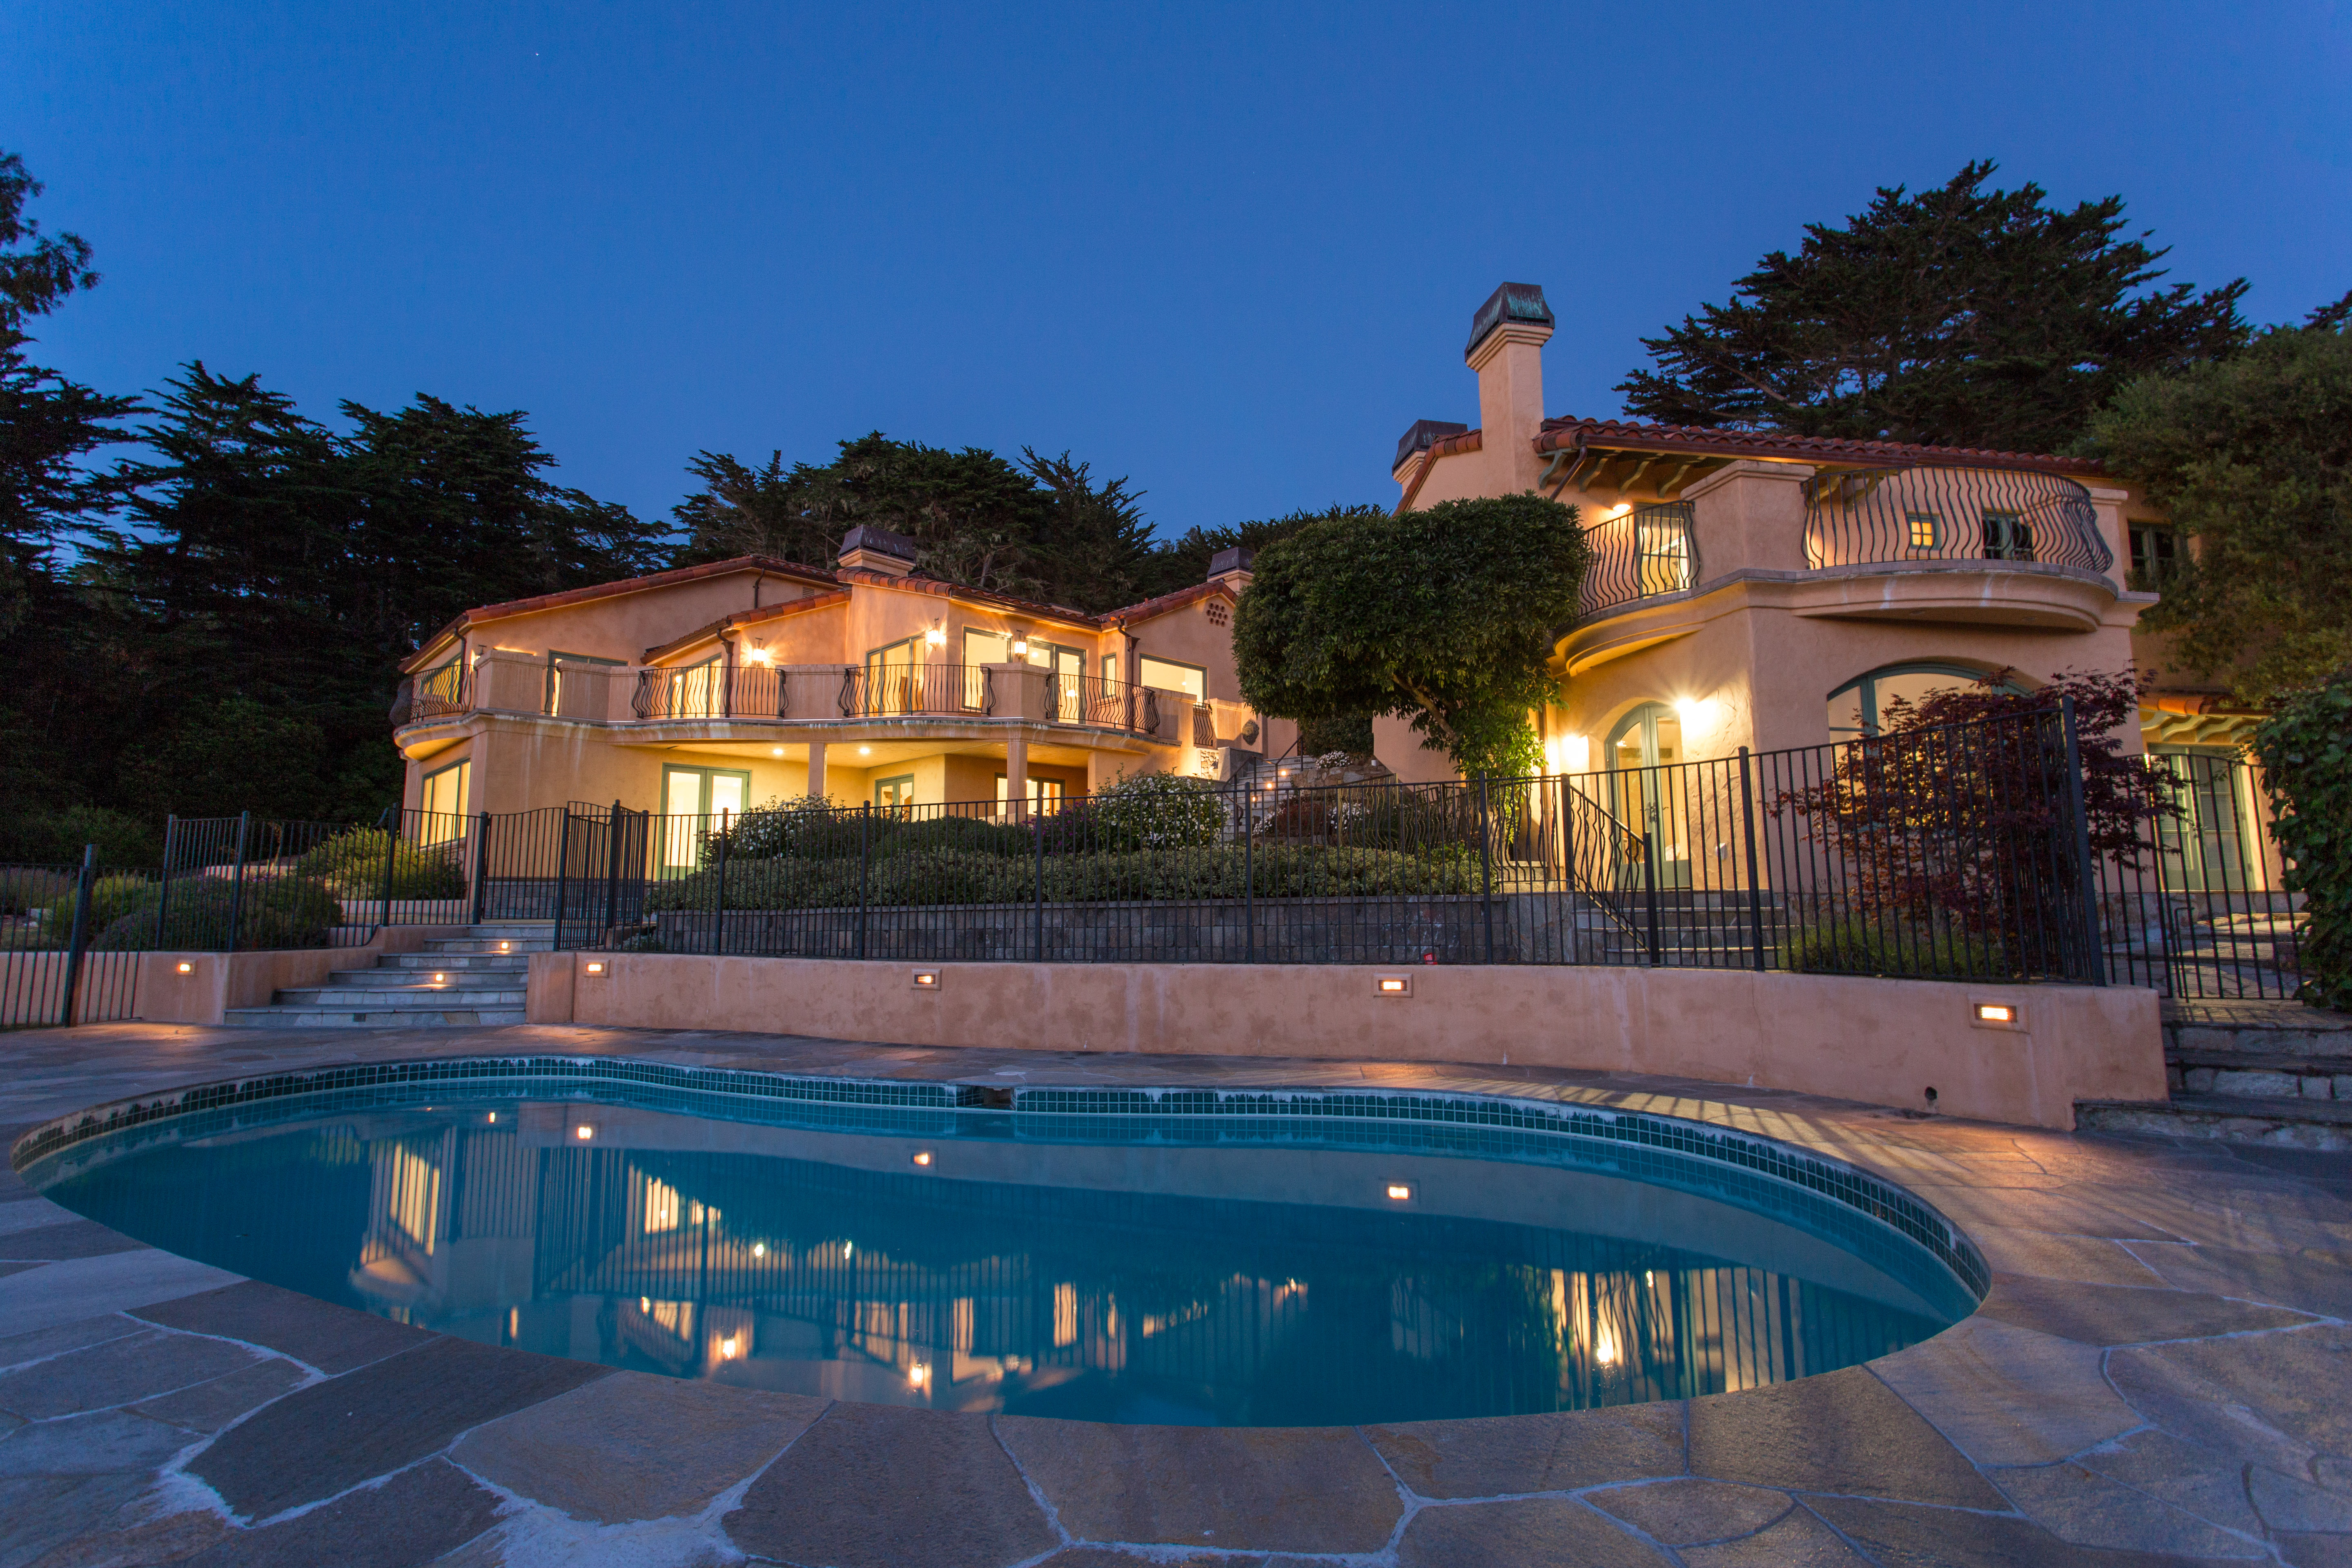 Carmel Highlands Resort Like retreat